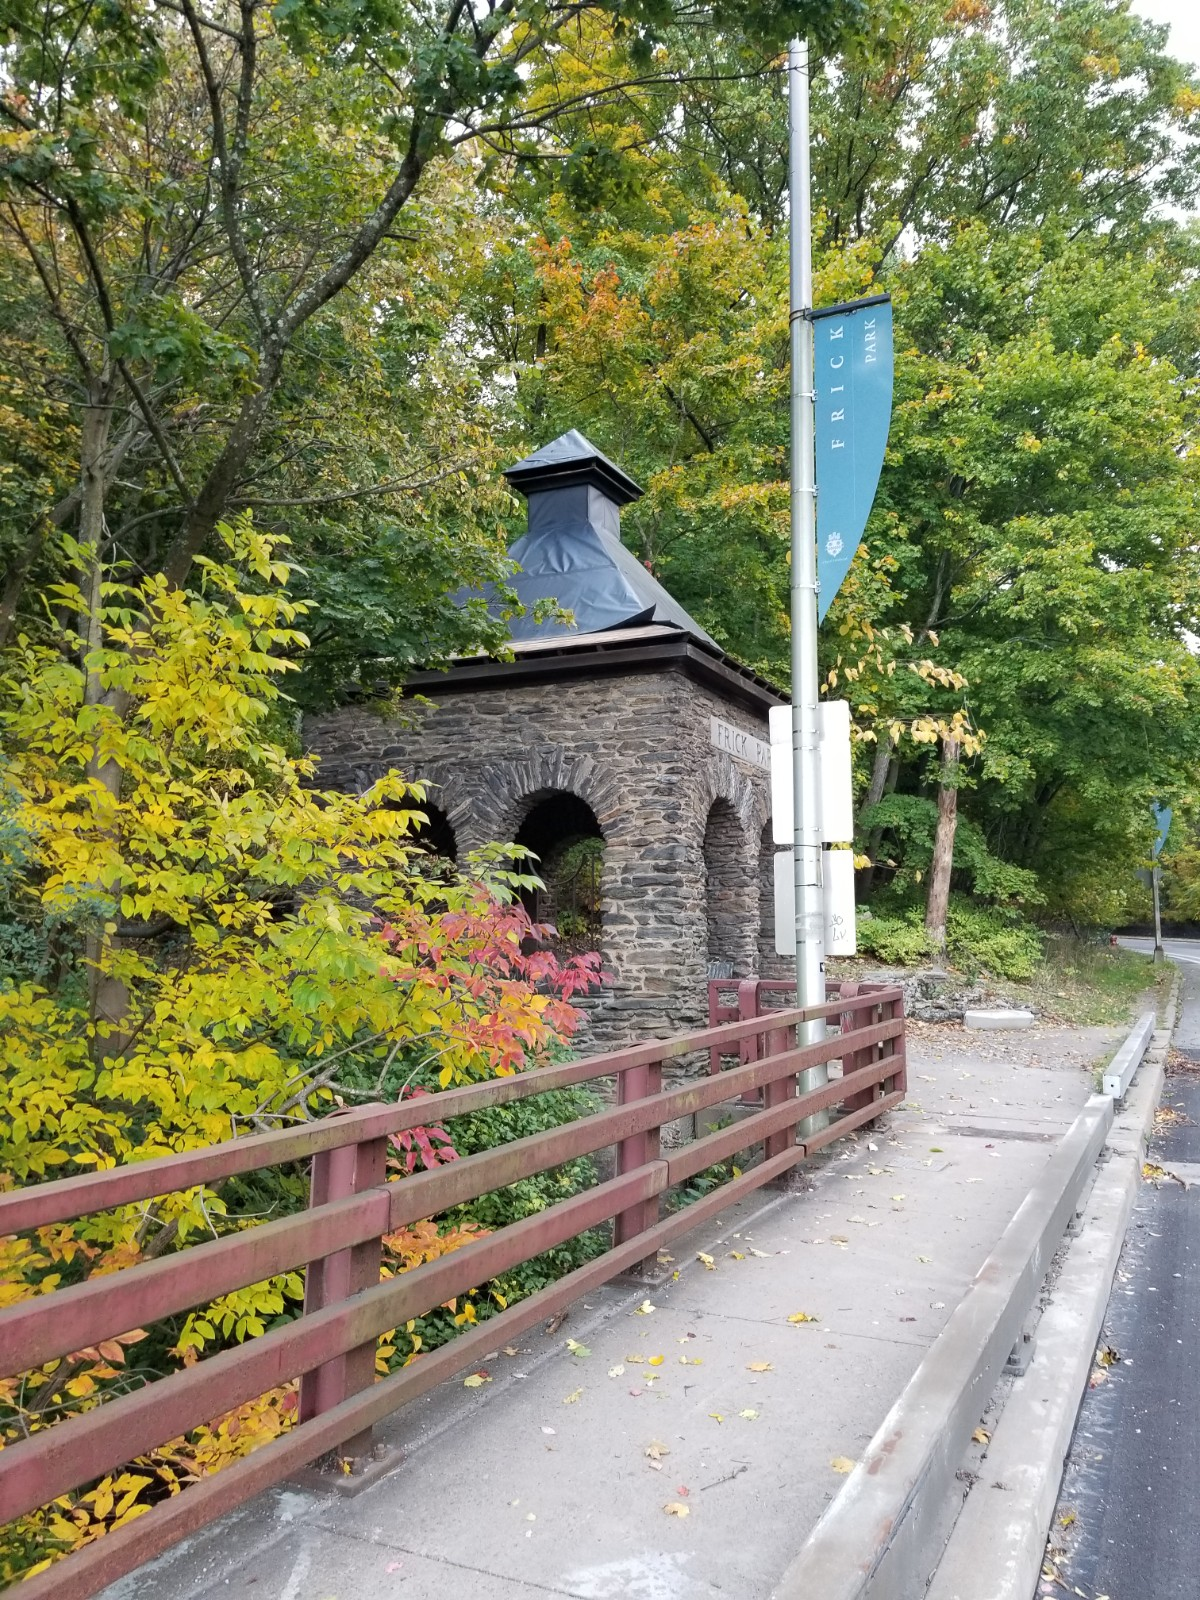 Forbes Avenue Gatehouse at Frick Park surrounded by trees